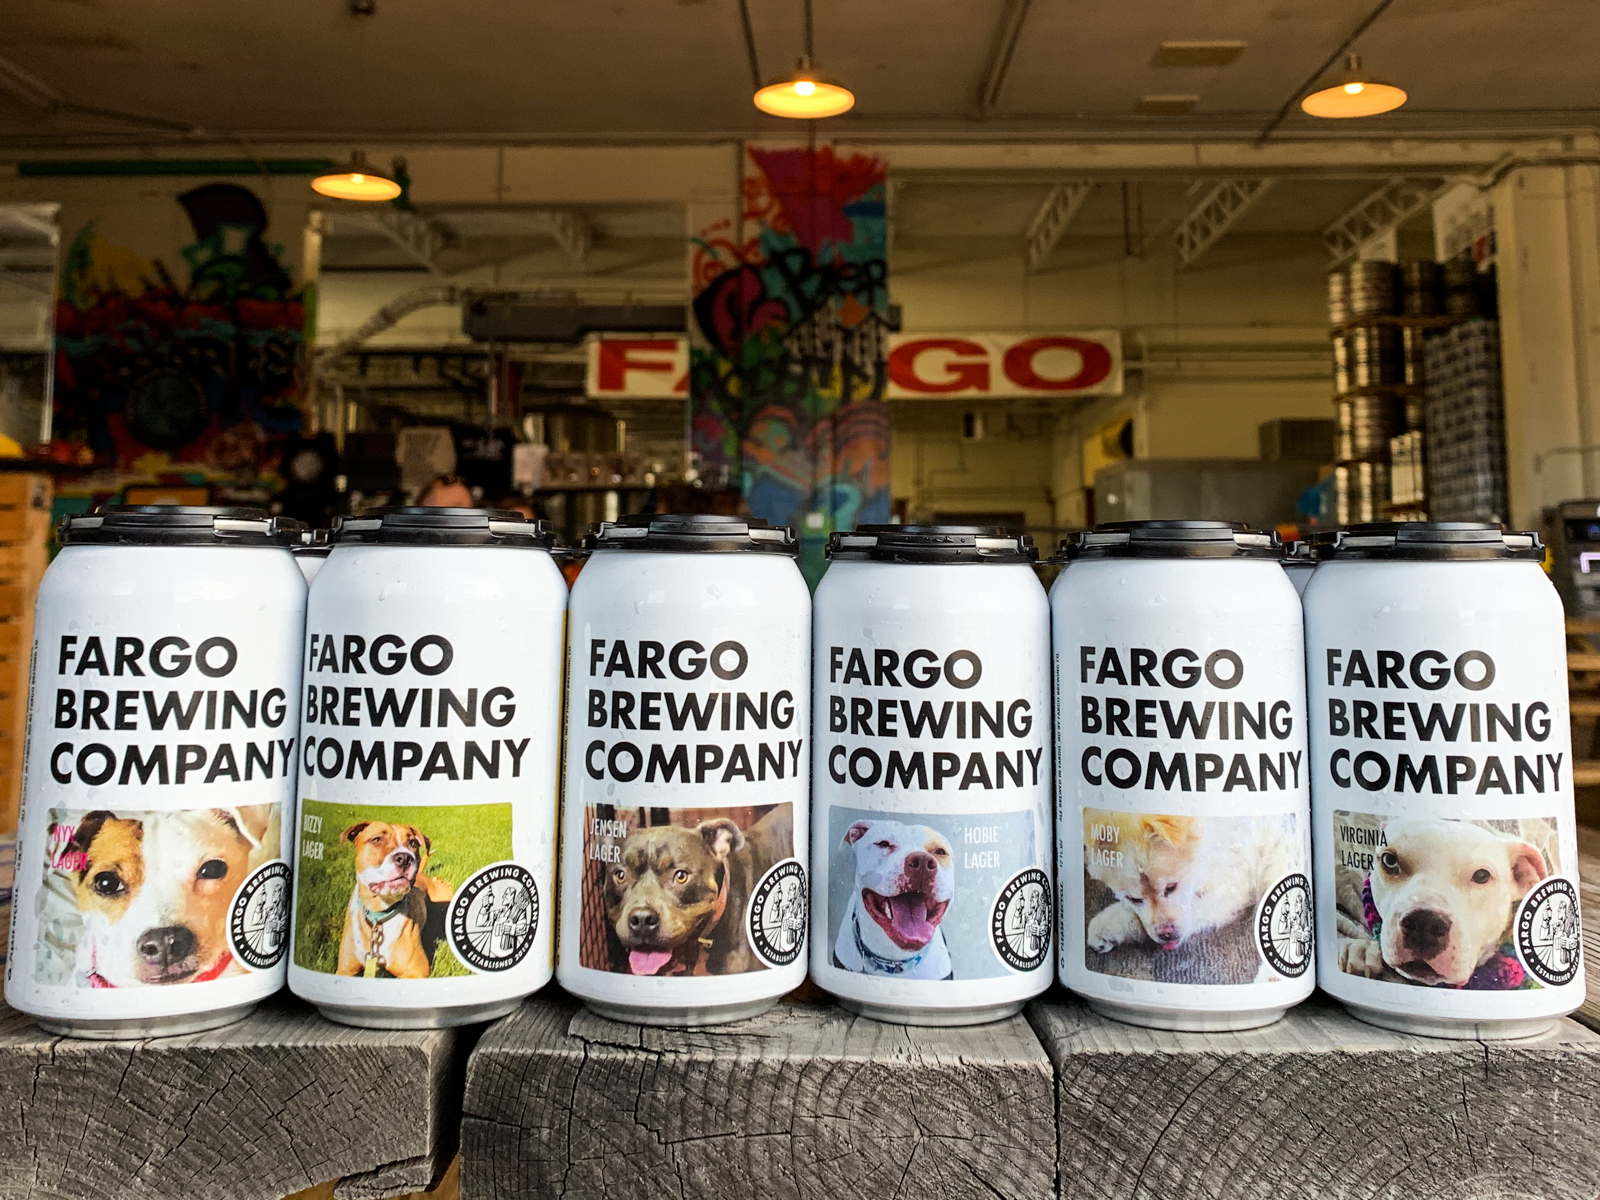 Fargo Brewing Company Shelter Dog Beer Cans